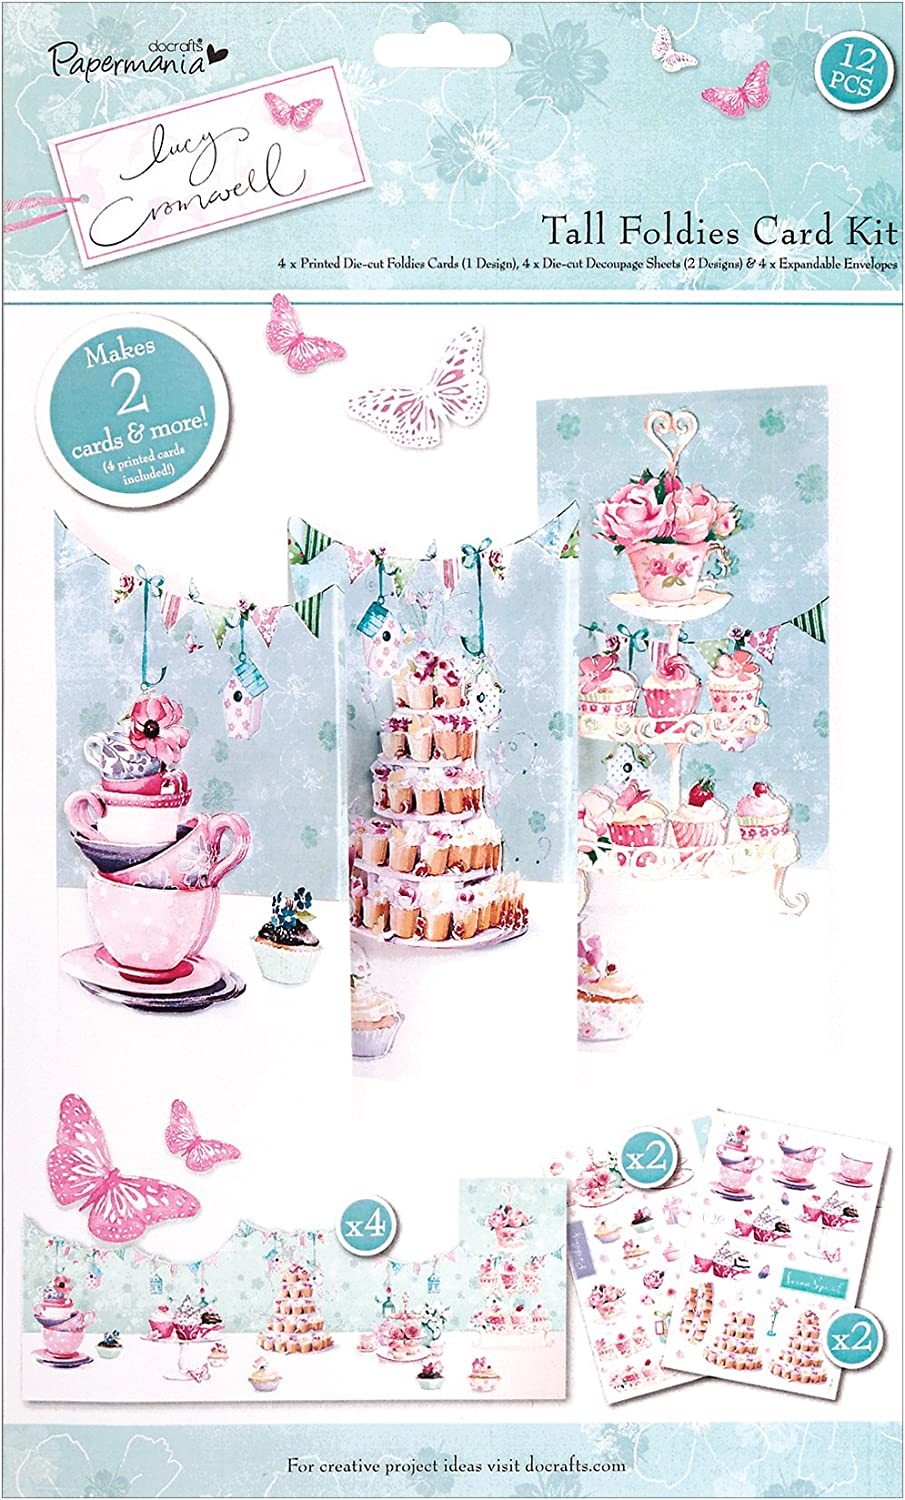 choose your design Papermania docrafts Christmas card Mini Decoupage Kit